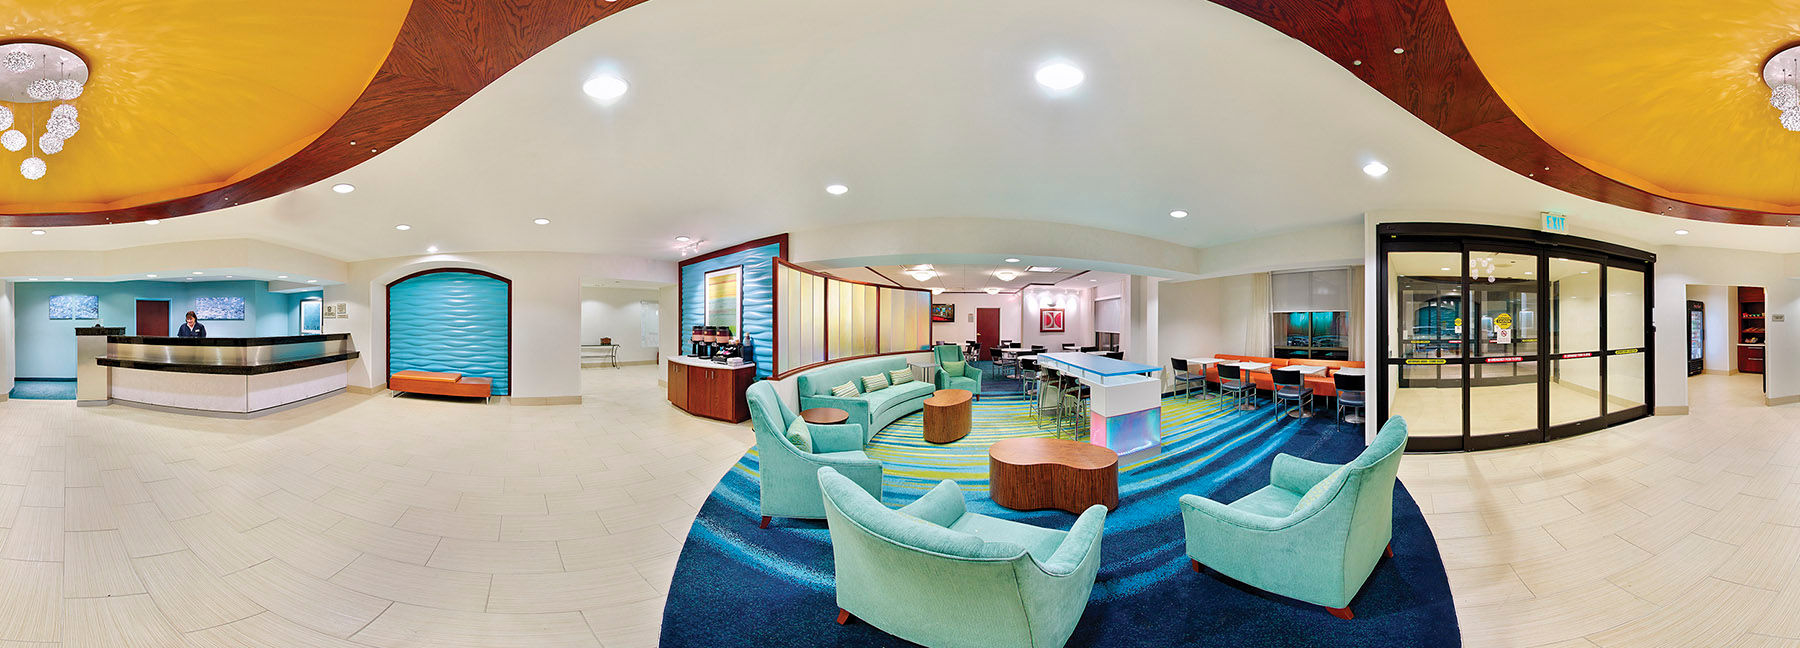 SpringHill Suites by Marriott Asheville image 0